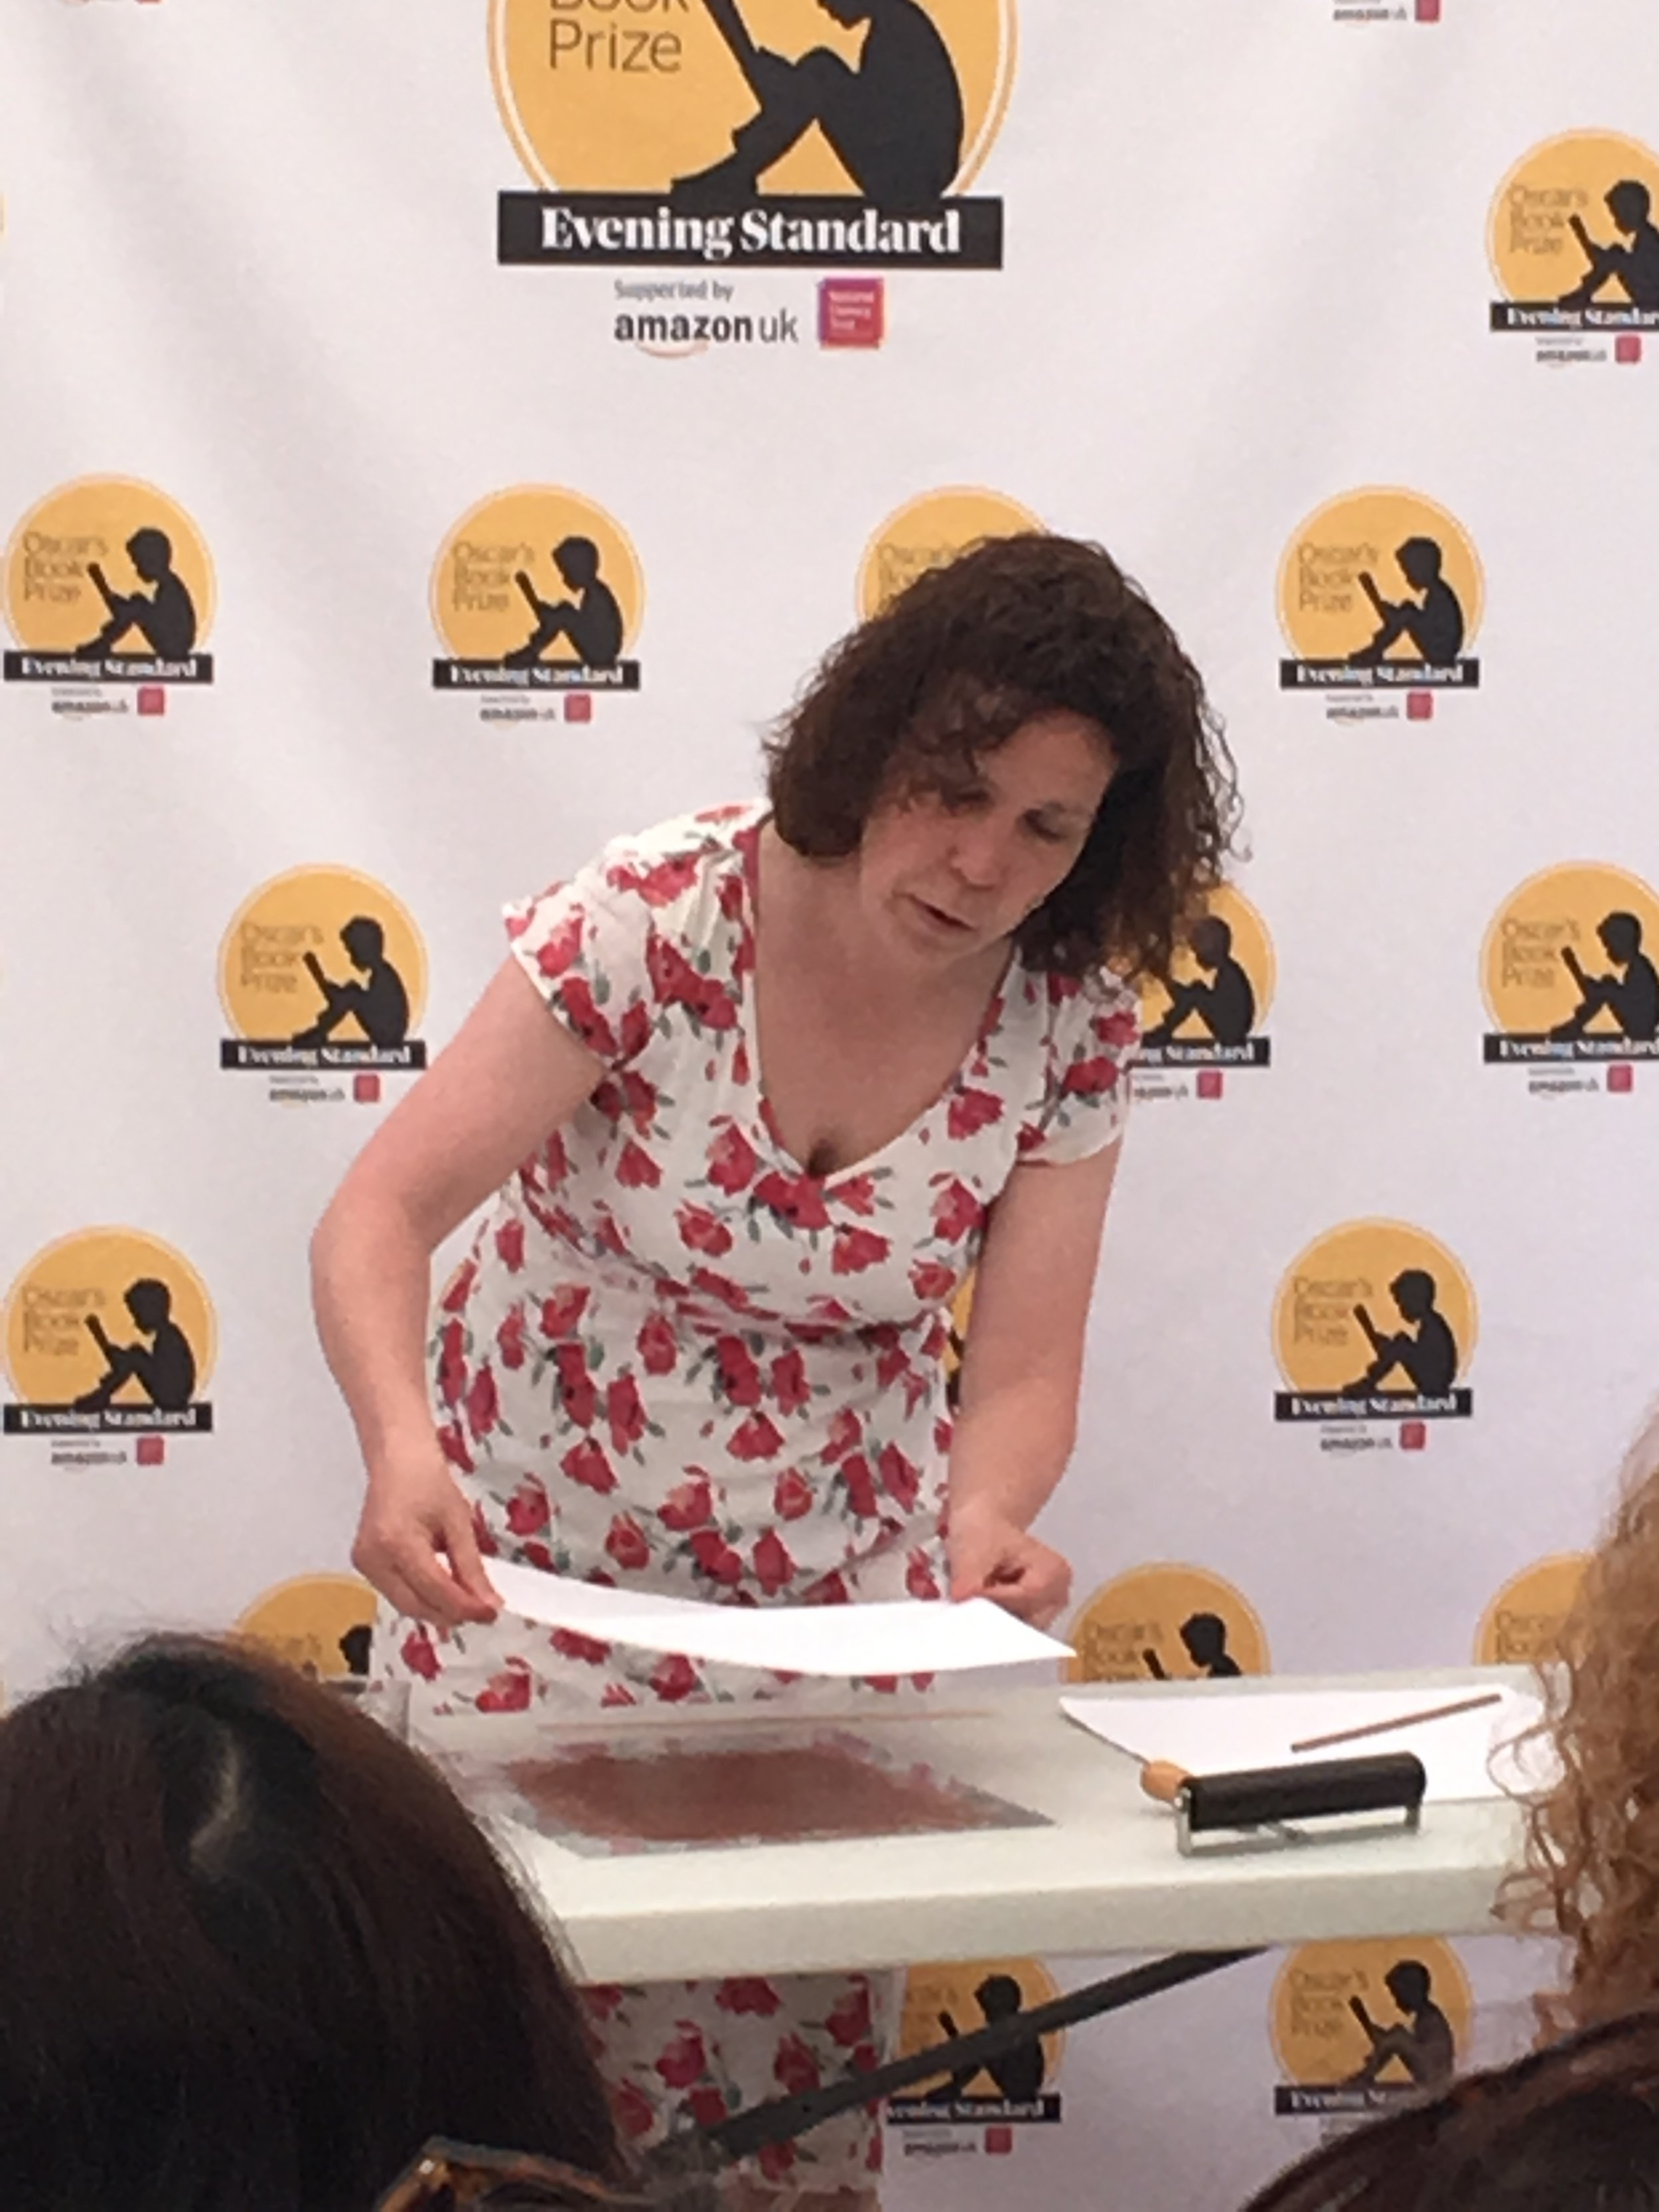 Gemma Merino does a live demonstration at the Hay Festival using one of the illustration techniques she likes to use in her work